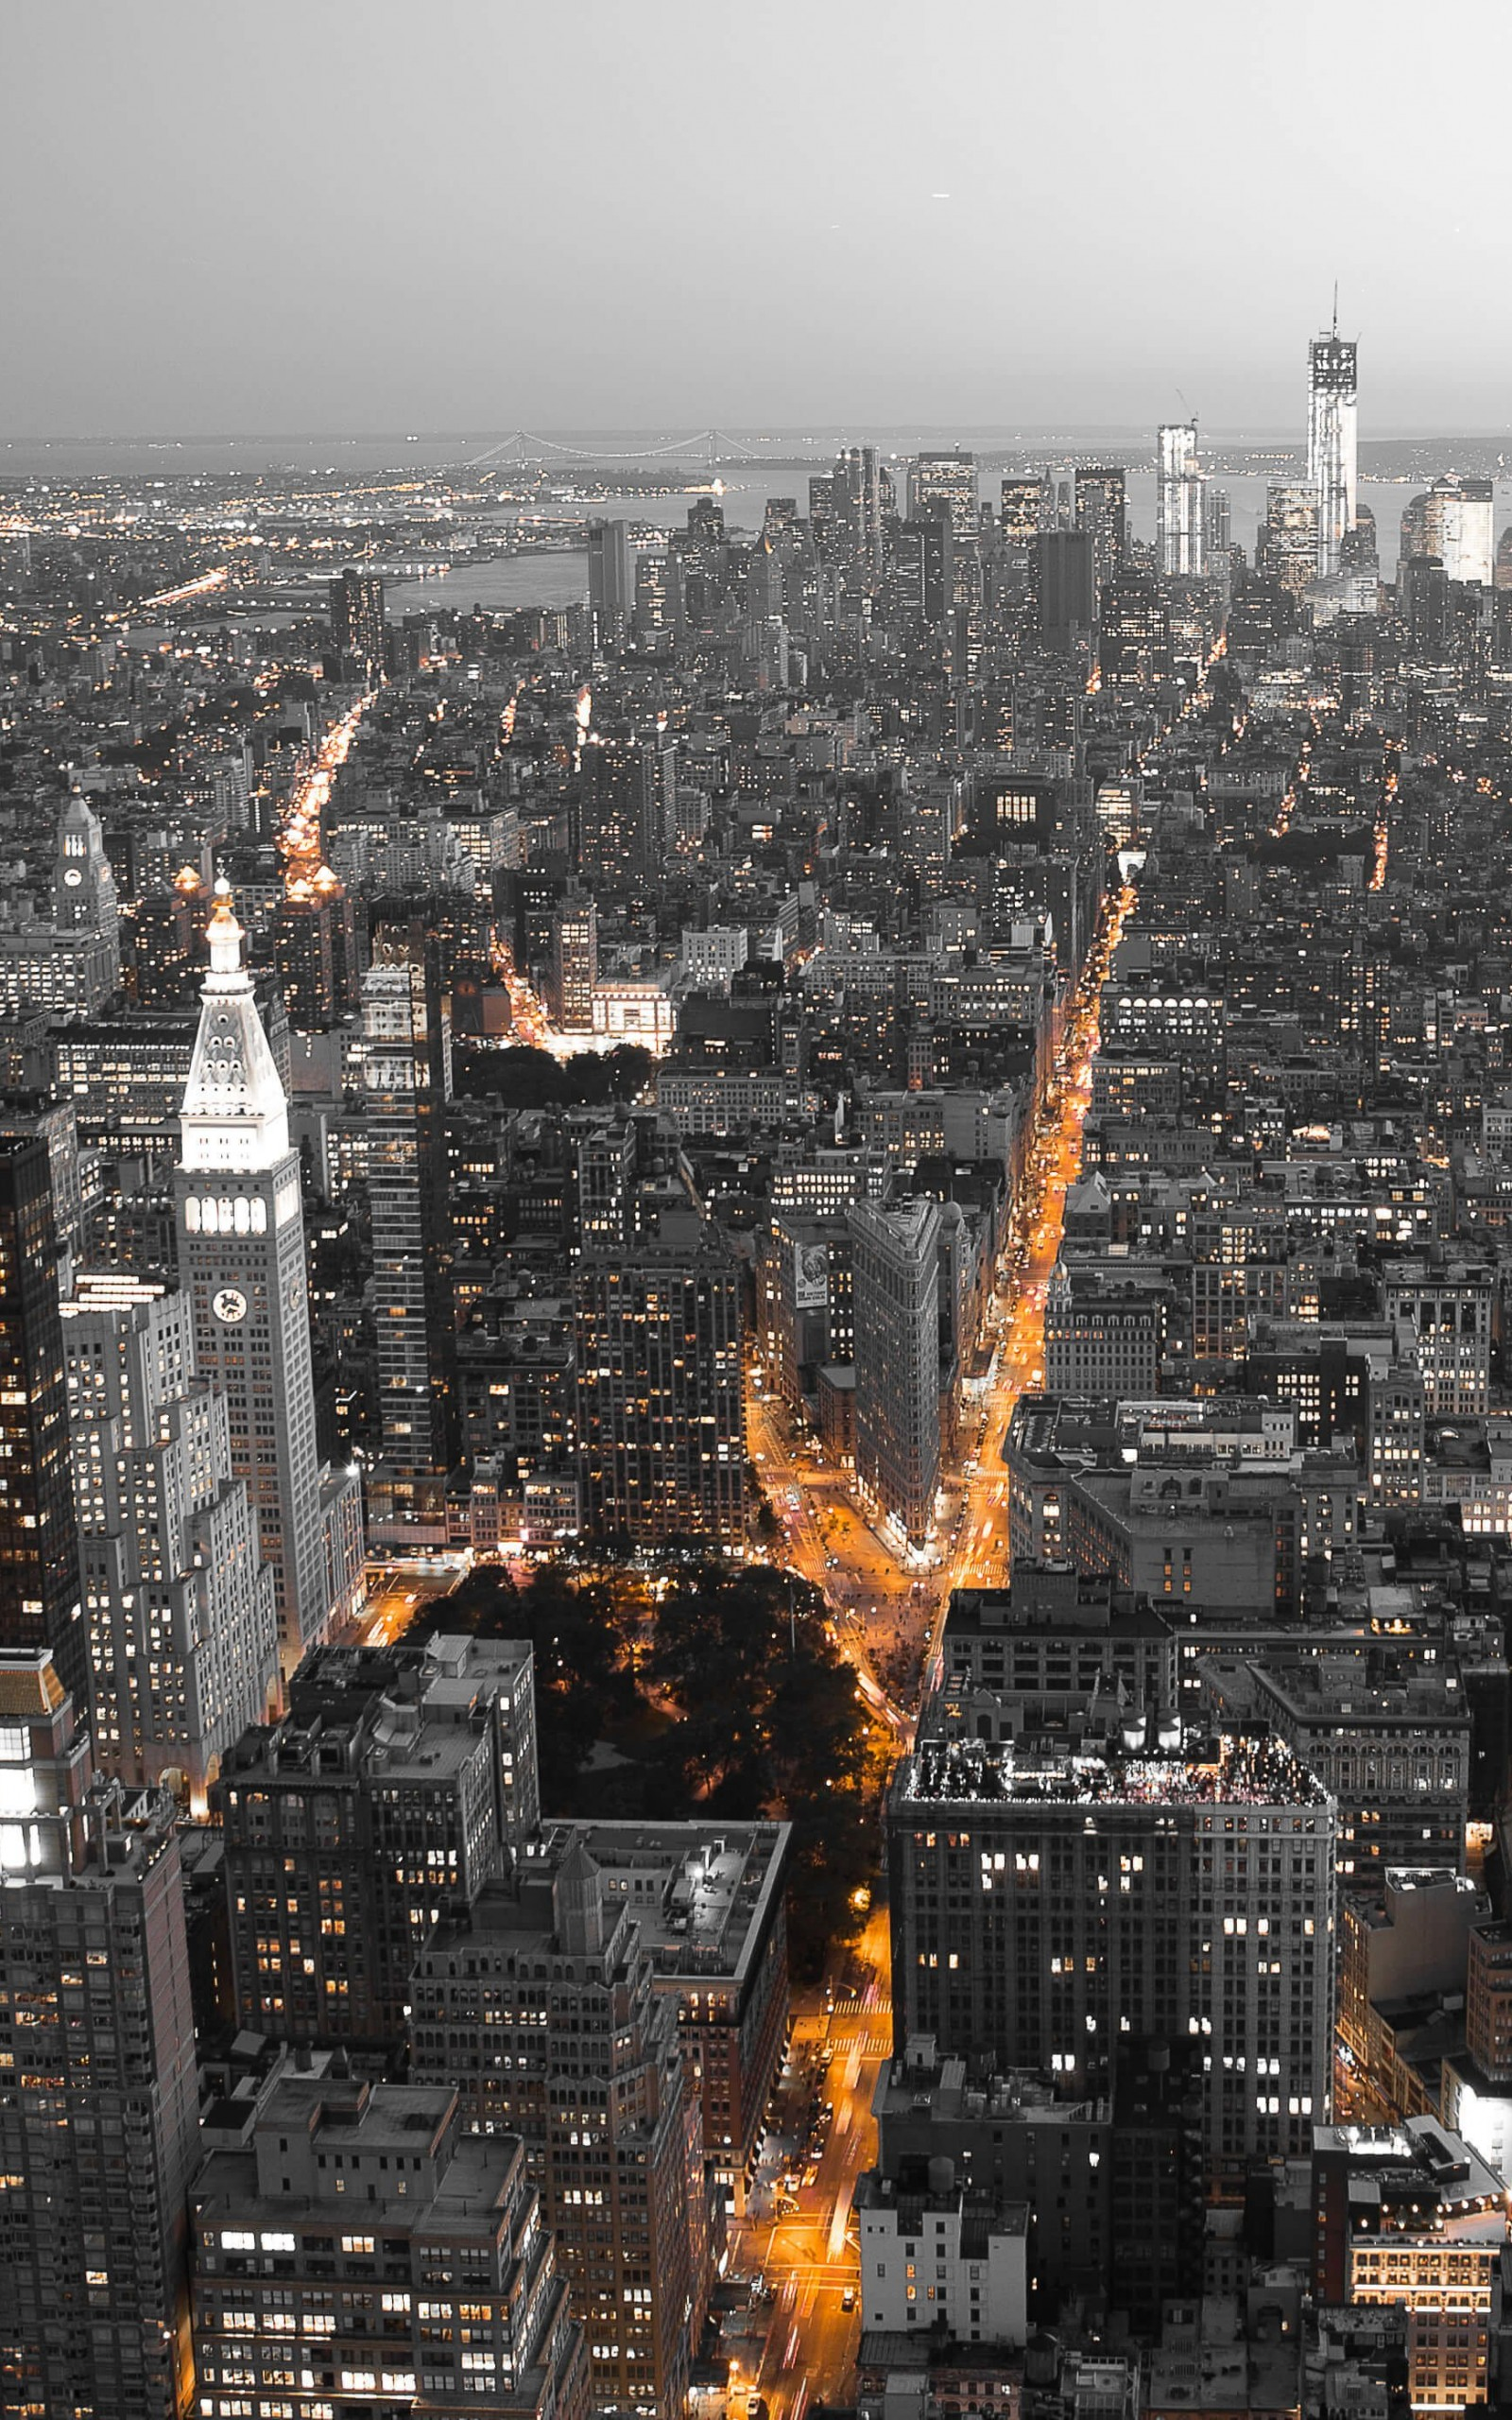 New York City by Night Wallpaper for Amazon Kindle Fire HDX 8.9